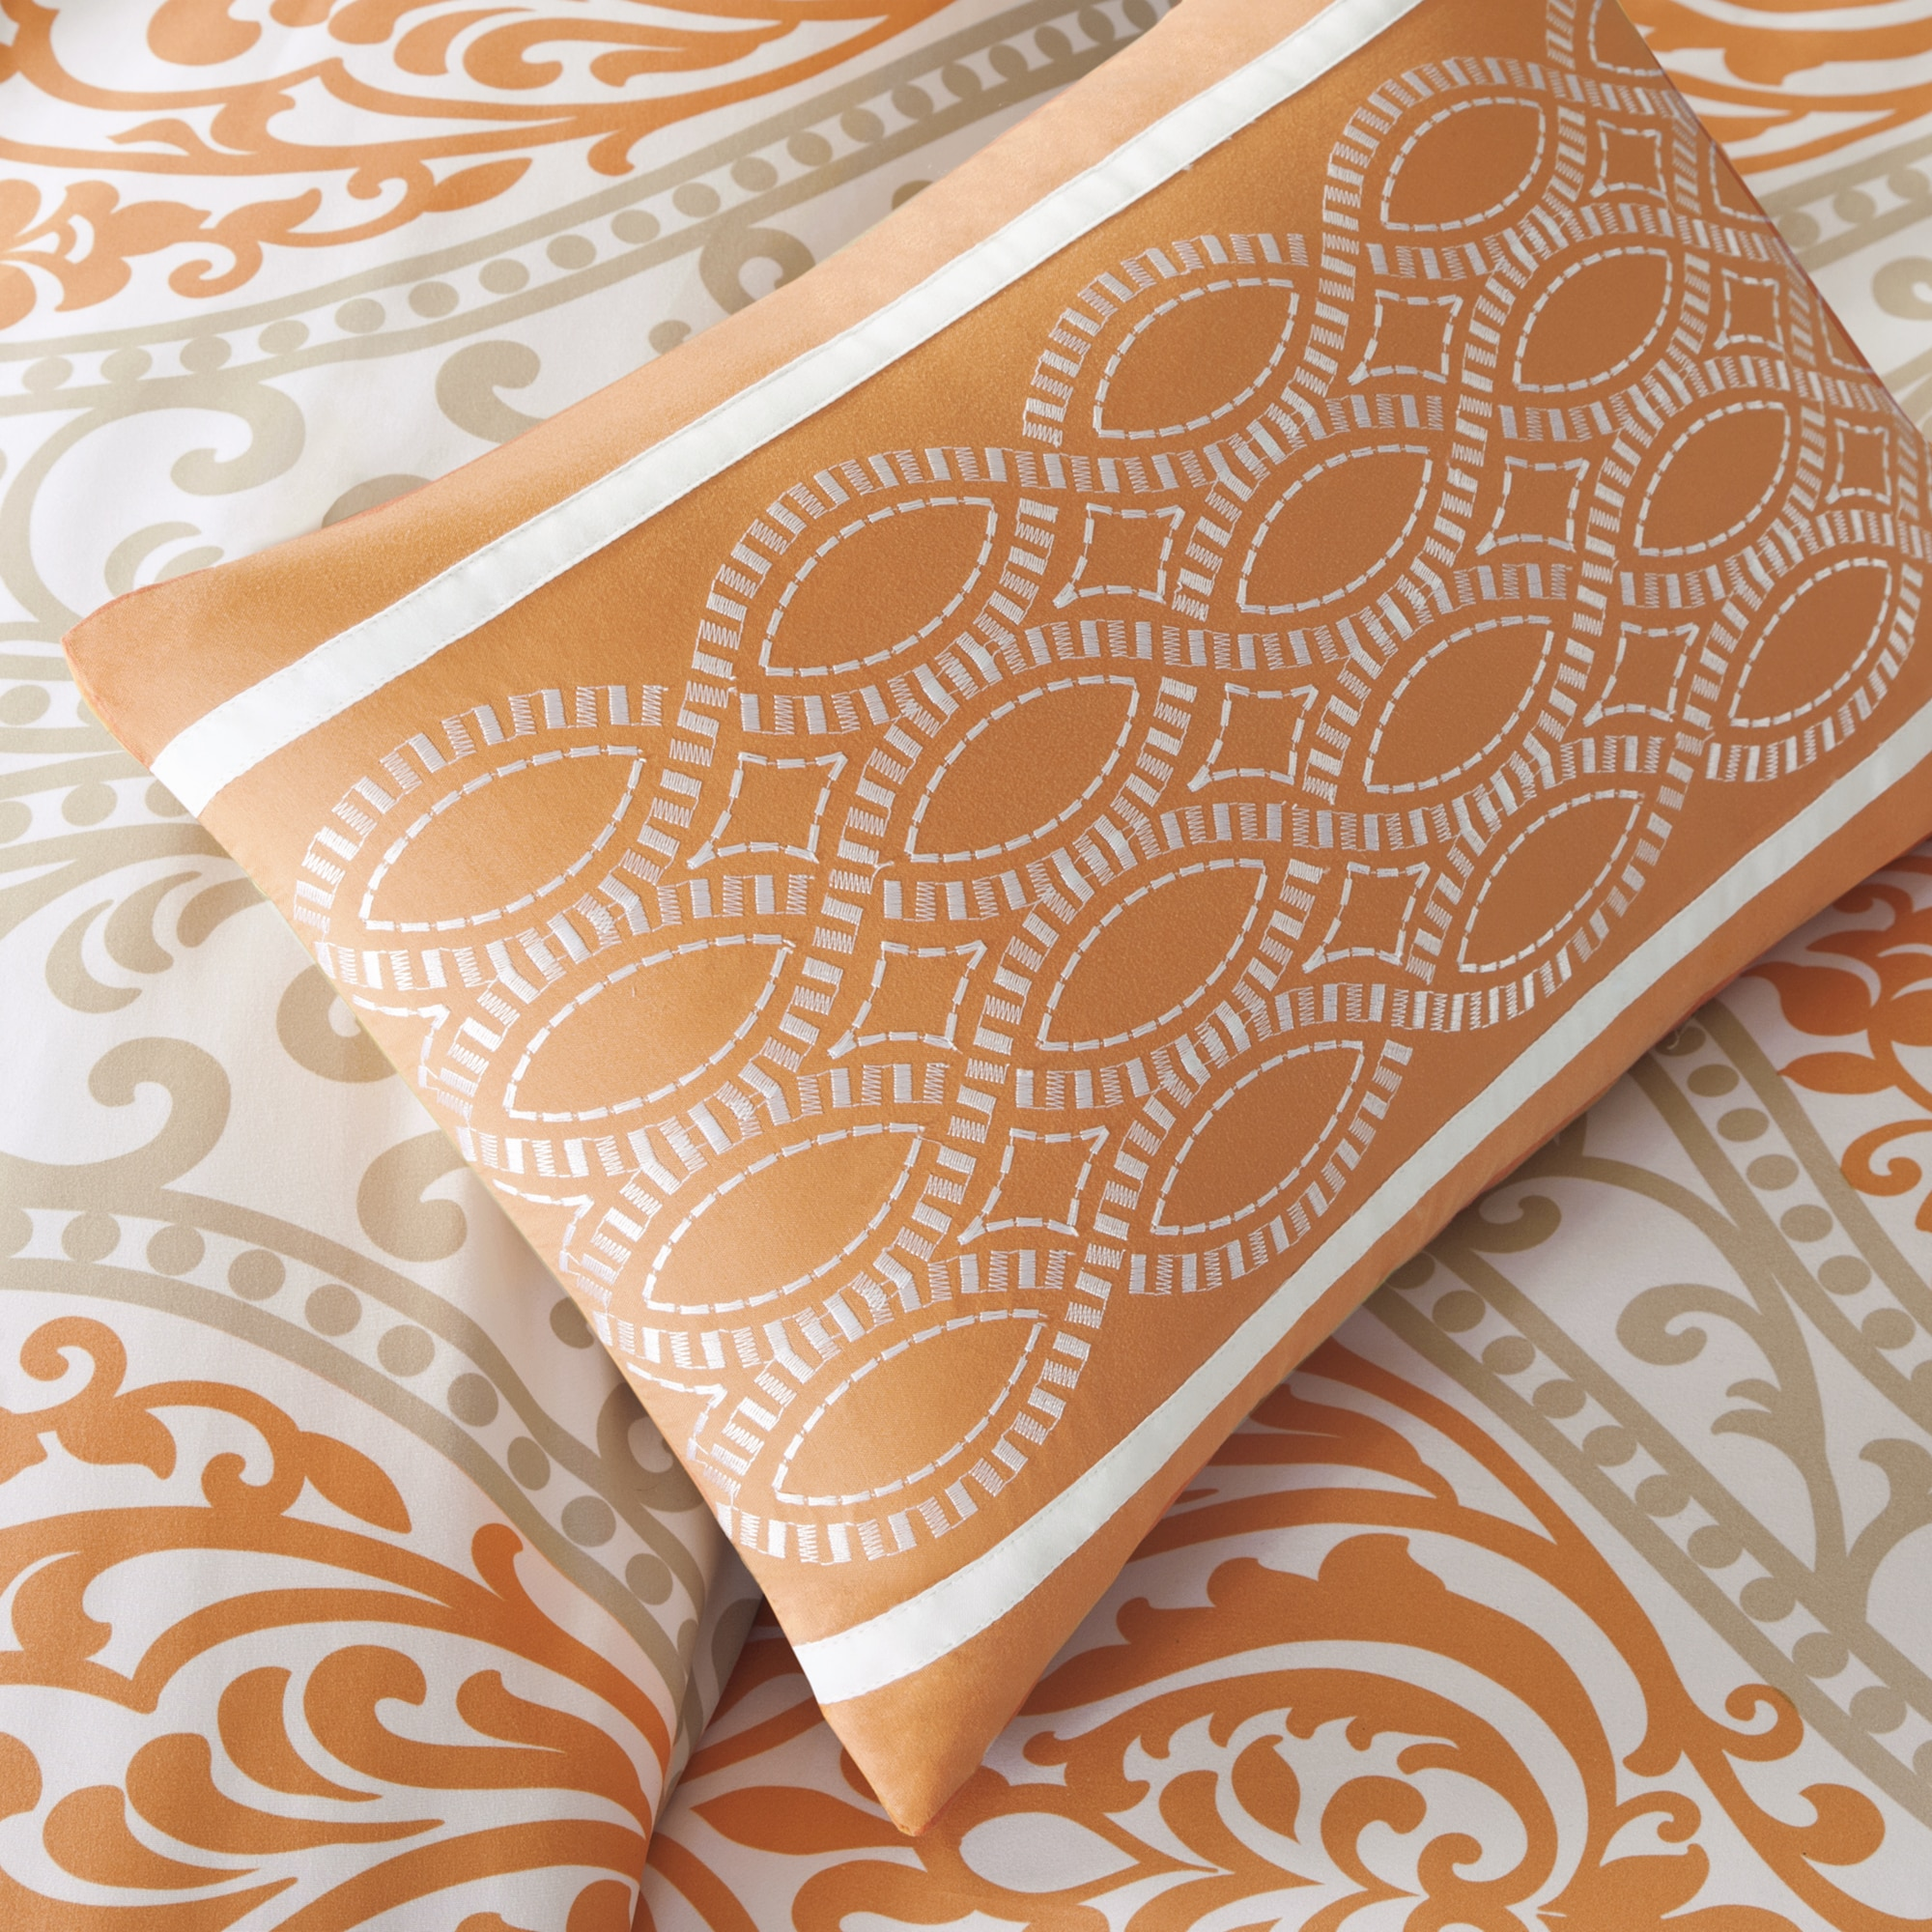 set prod qlt comforter aspect metaphor p hei orange queen wid